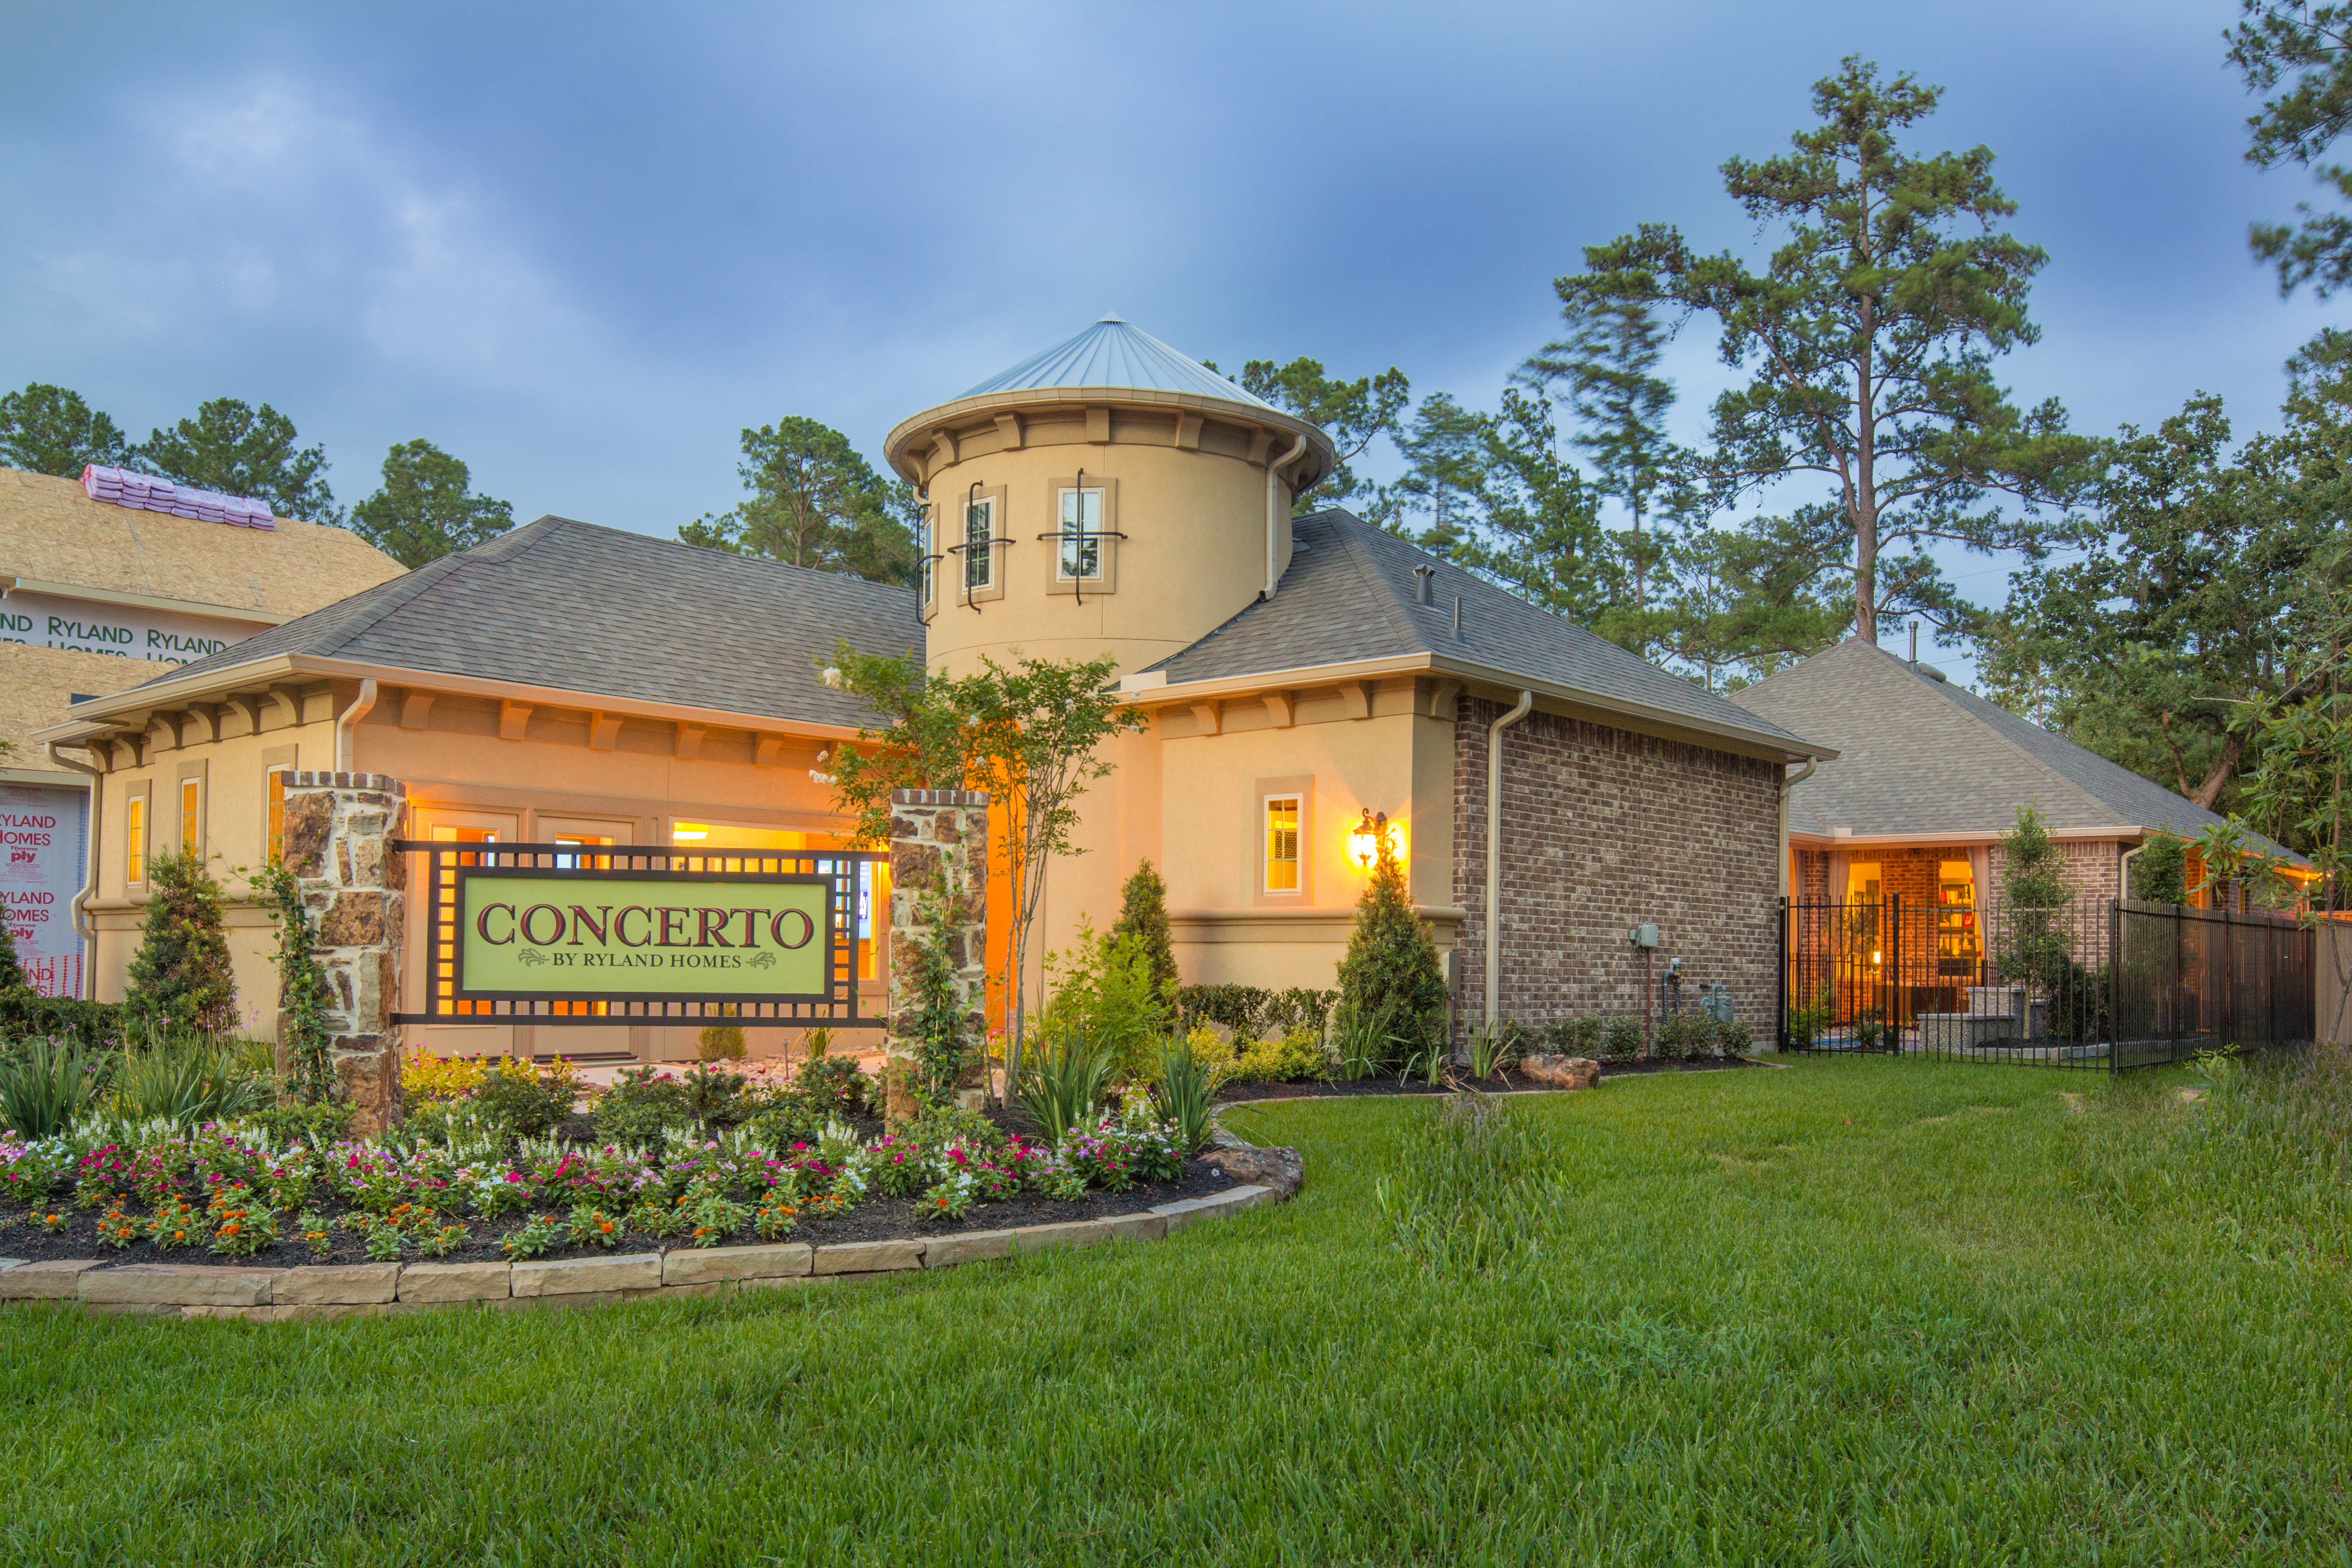 Ryland Homes Introduces A New Home Series U2013 The Woodlands Concerto  Courtyard | Business Wire